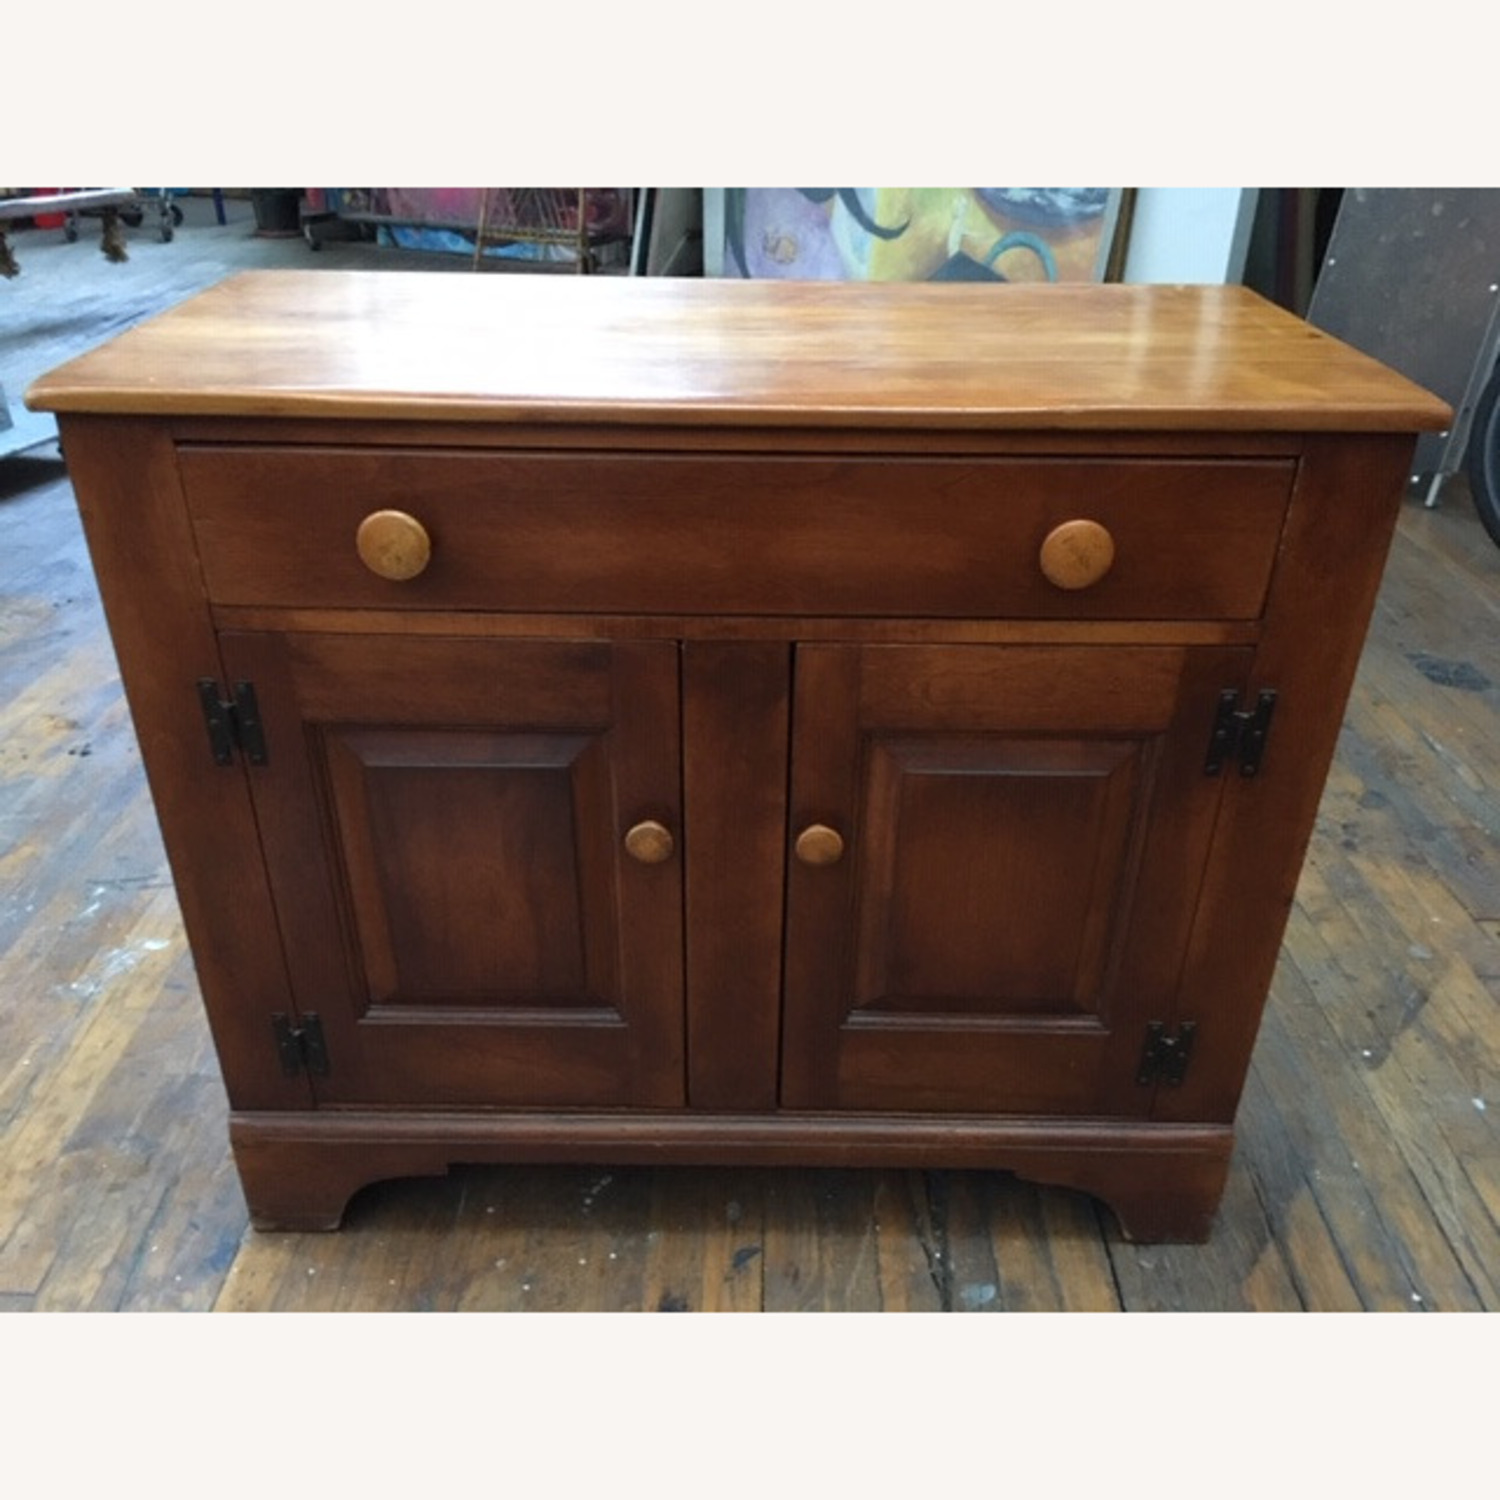 Cushman Colonial Sideboard 1950s Solid Maple - image-1